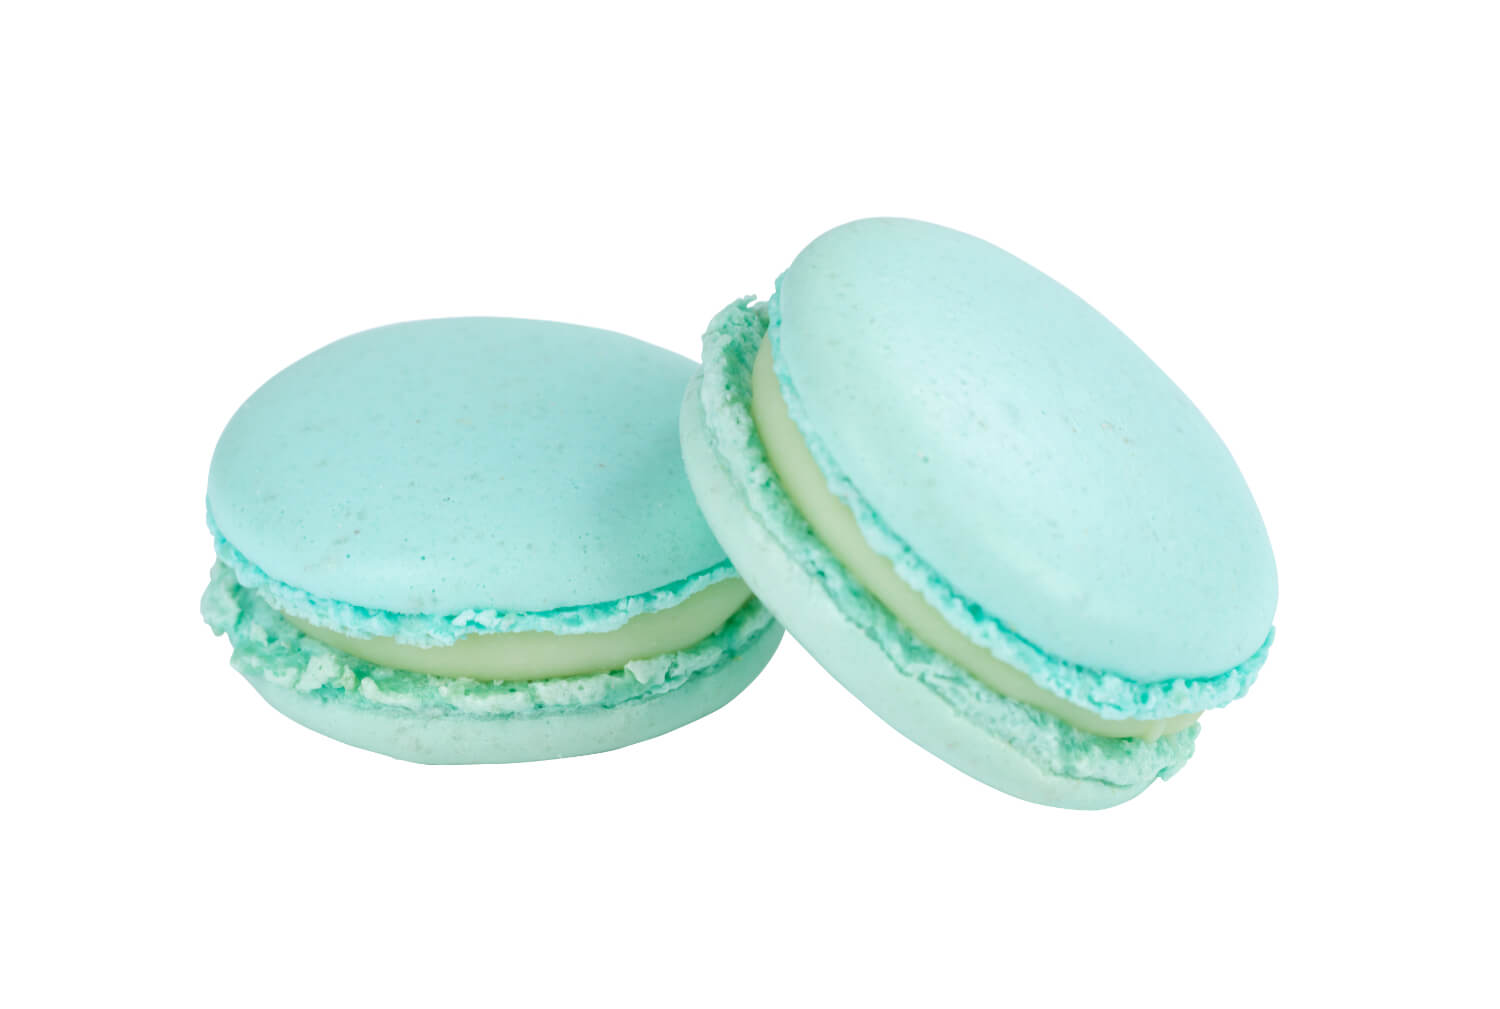 Cakes by Hancock - Baby Blue White Chocolate Macarons